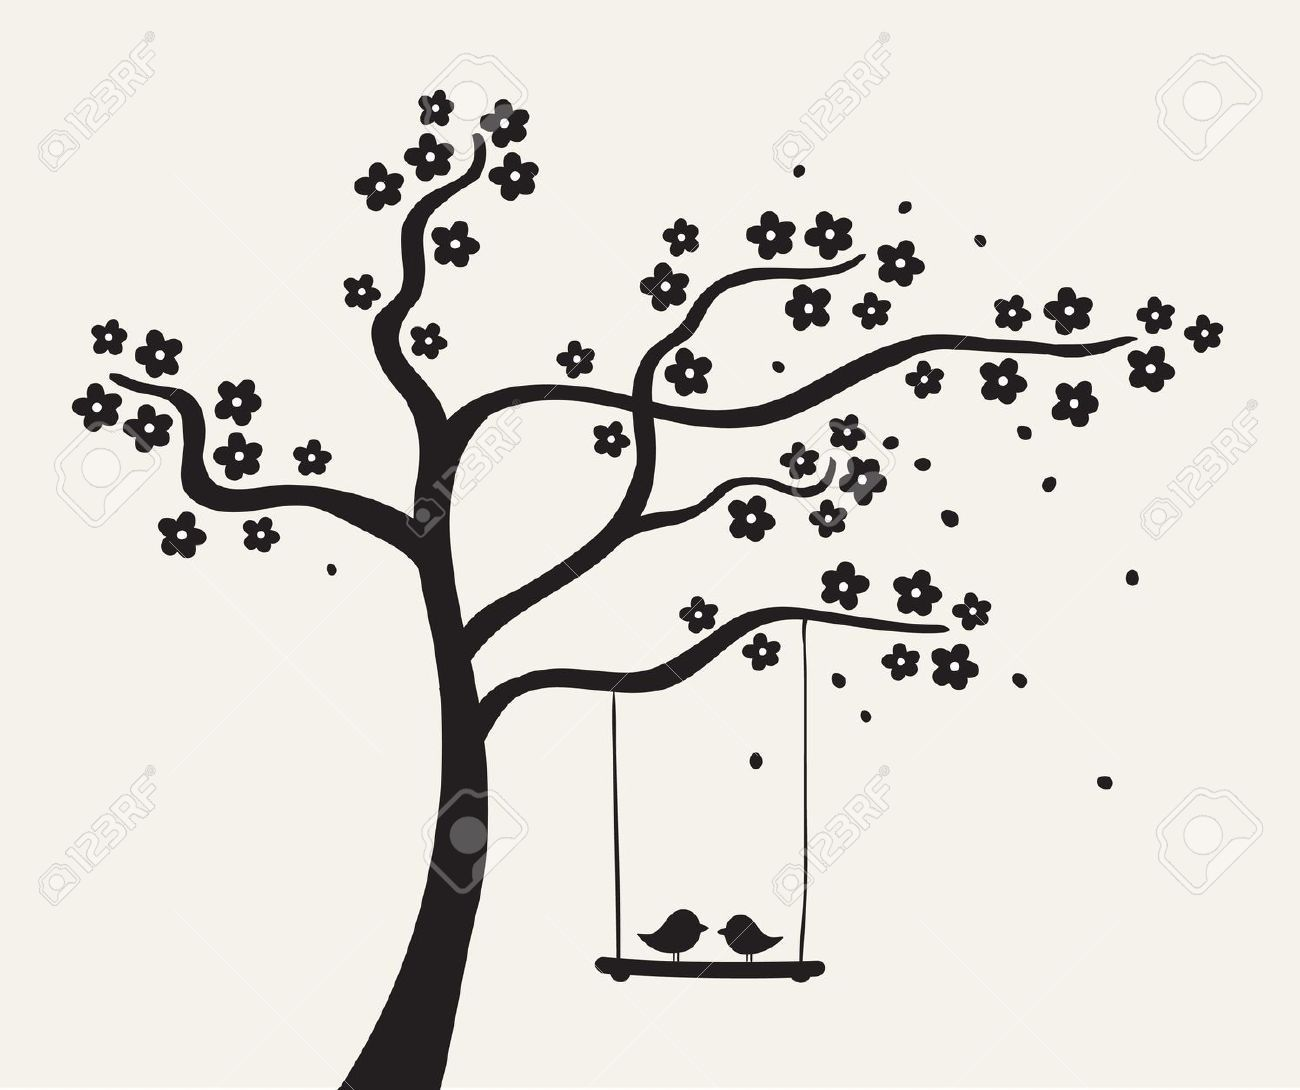 clipart tree of love black and white.